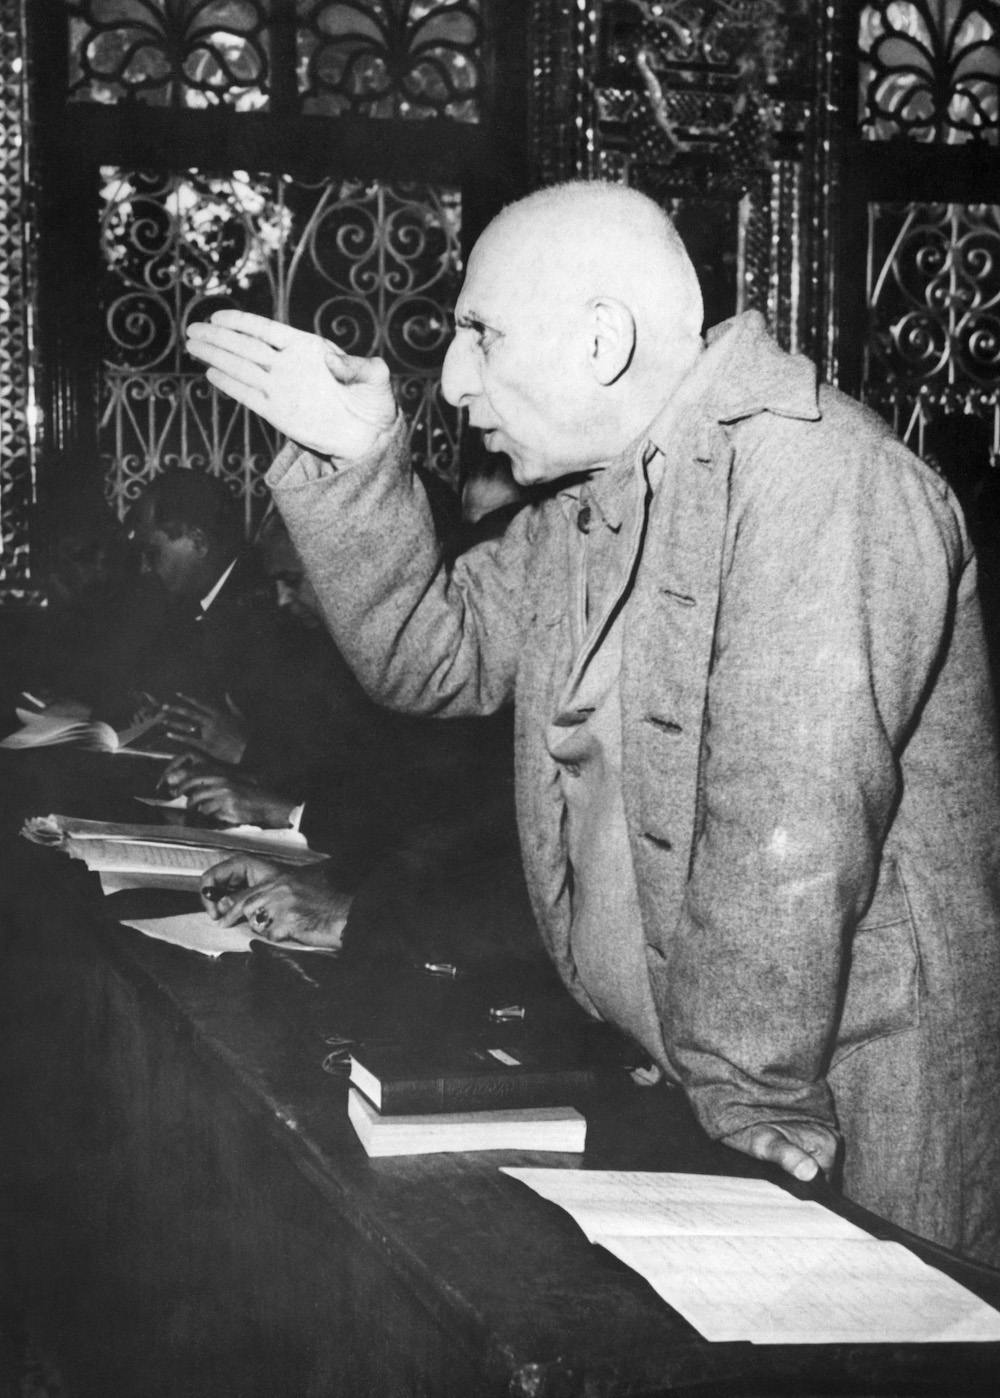 Iranian ex-premier Mohammad Mossadeq using his hand to make a point during court proceedings in Tehran's military tribunal, trying him for treason on Nov. 20, 1953.